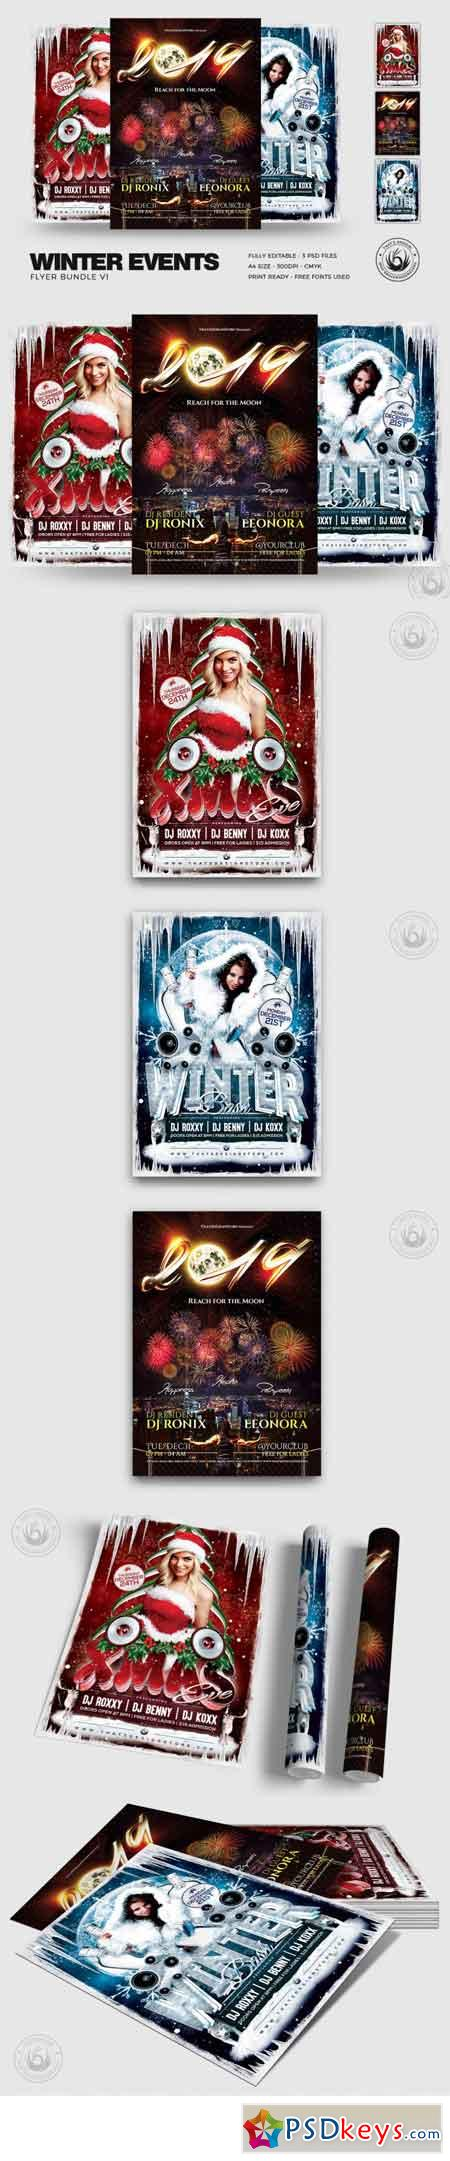 Winter Events Flyer Bundle V1